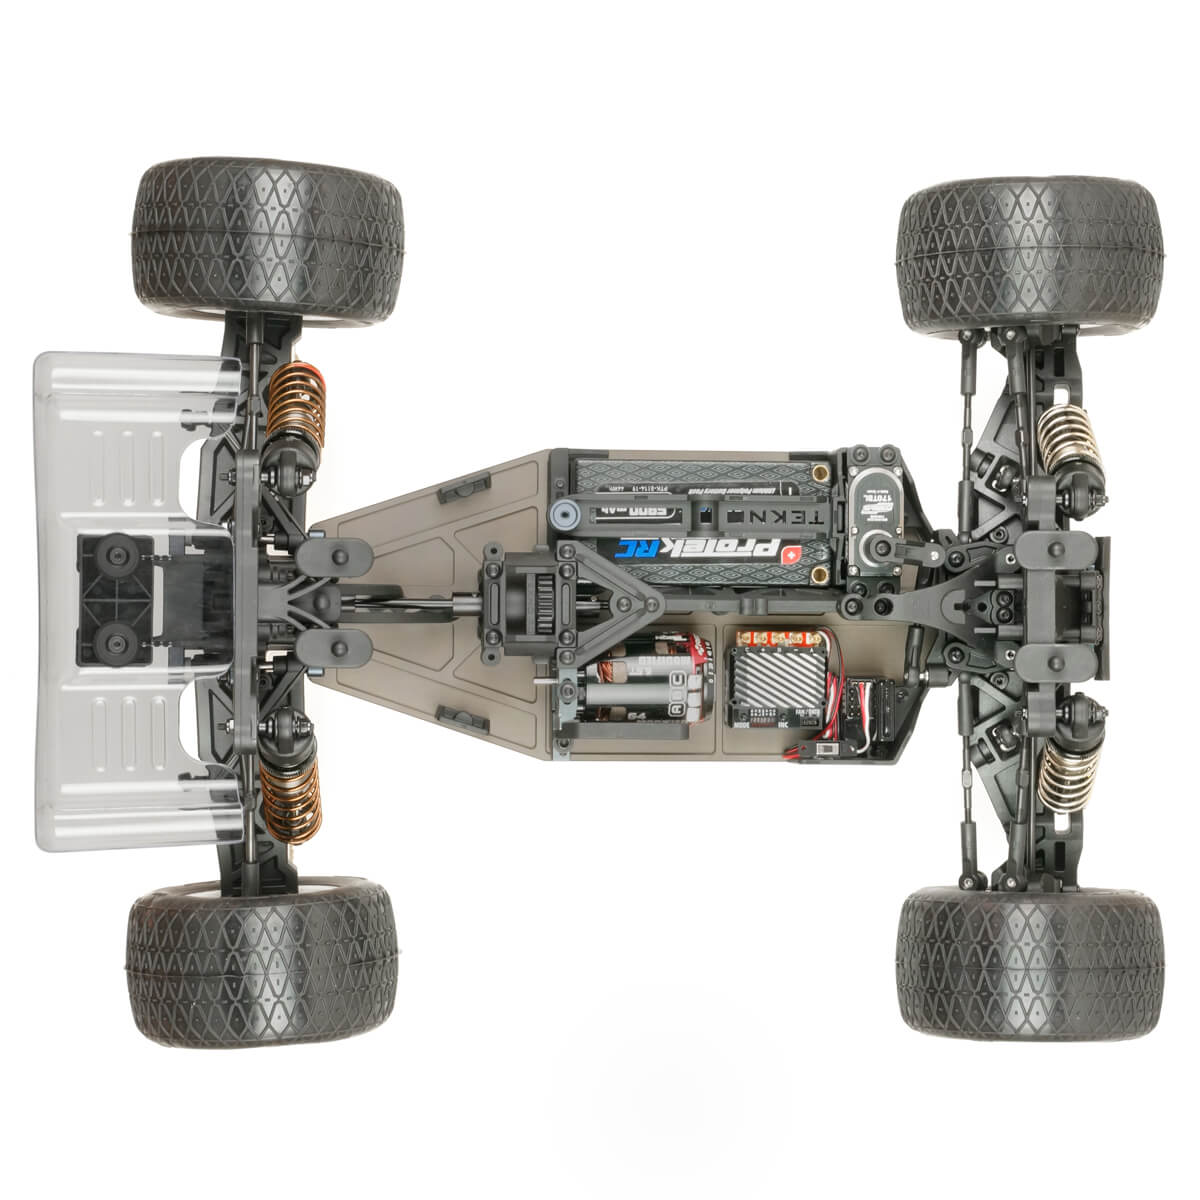 Tekno RC ET410.2 Truggy Kit - Top Chassis